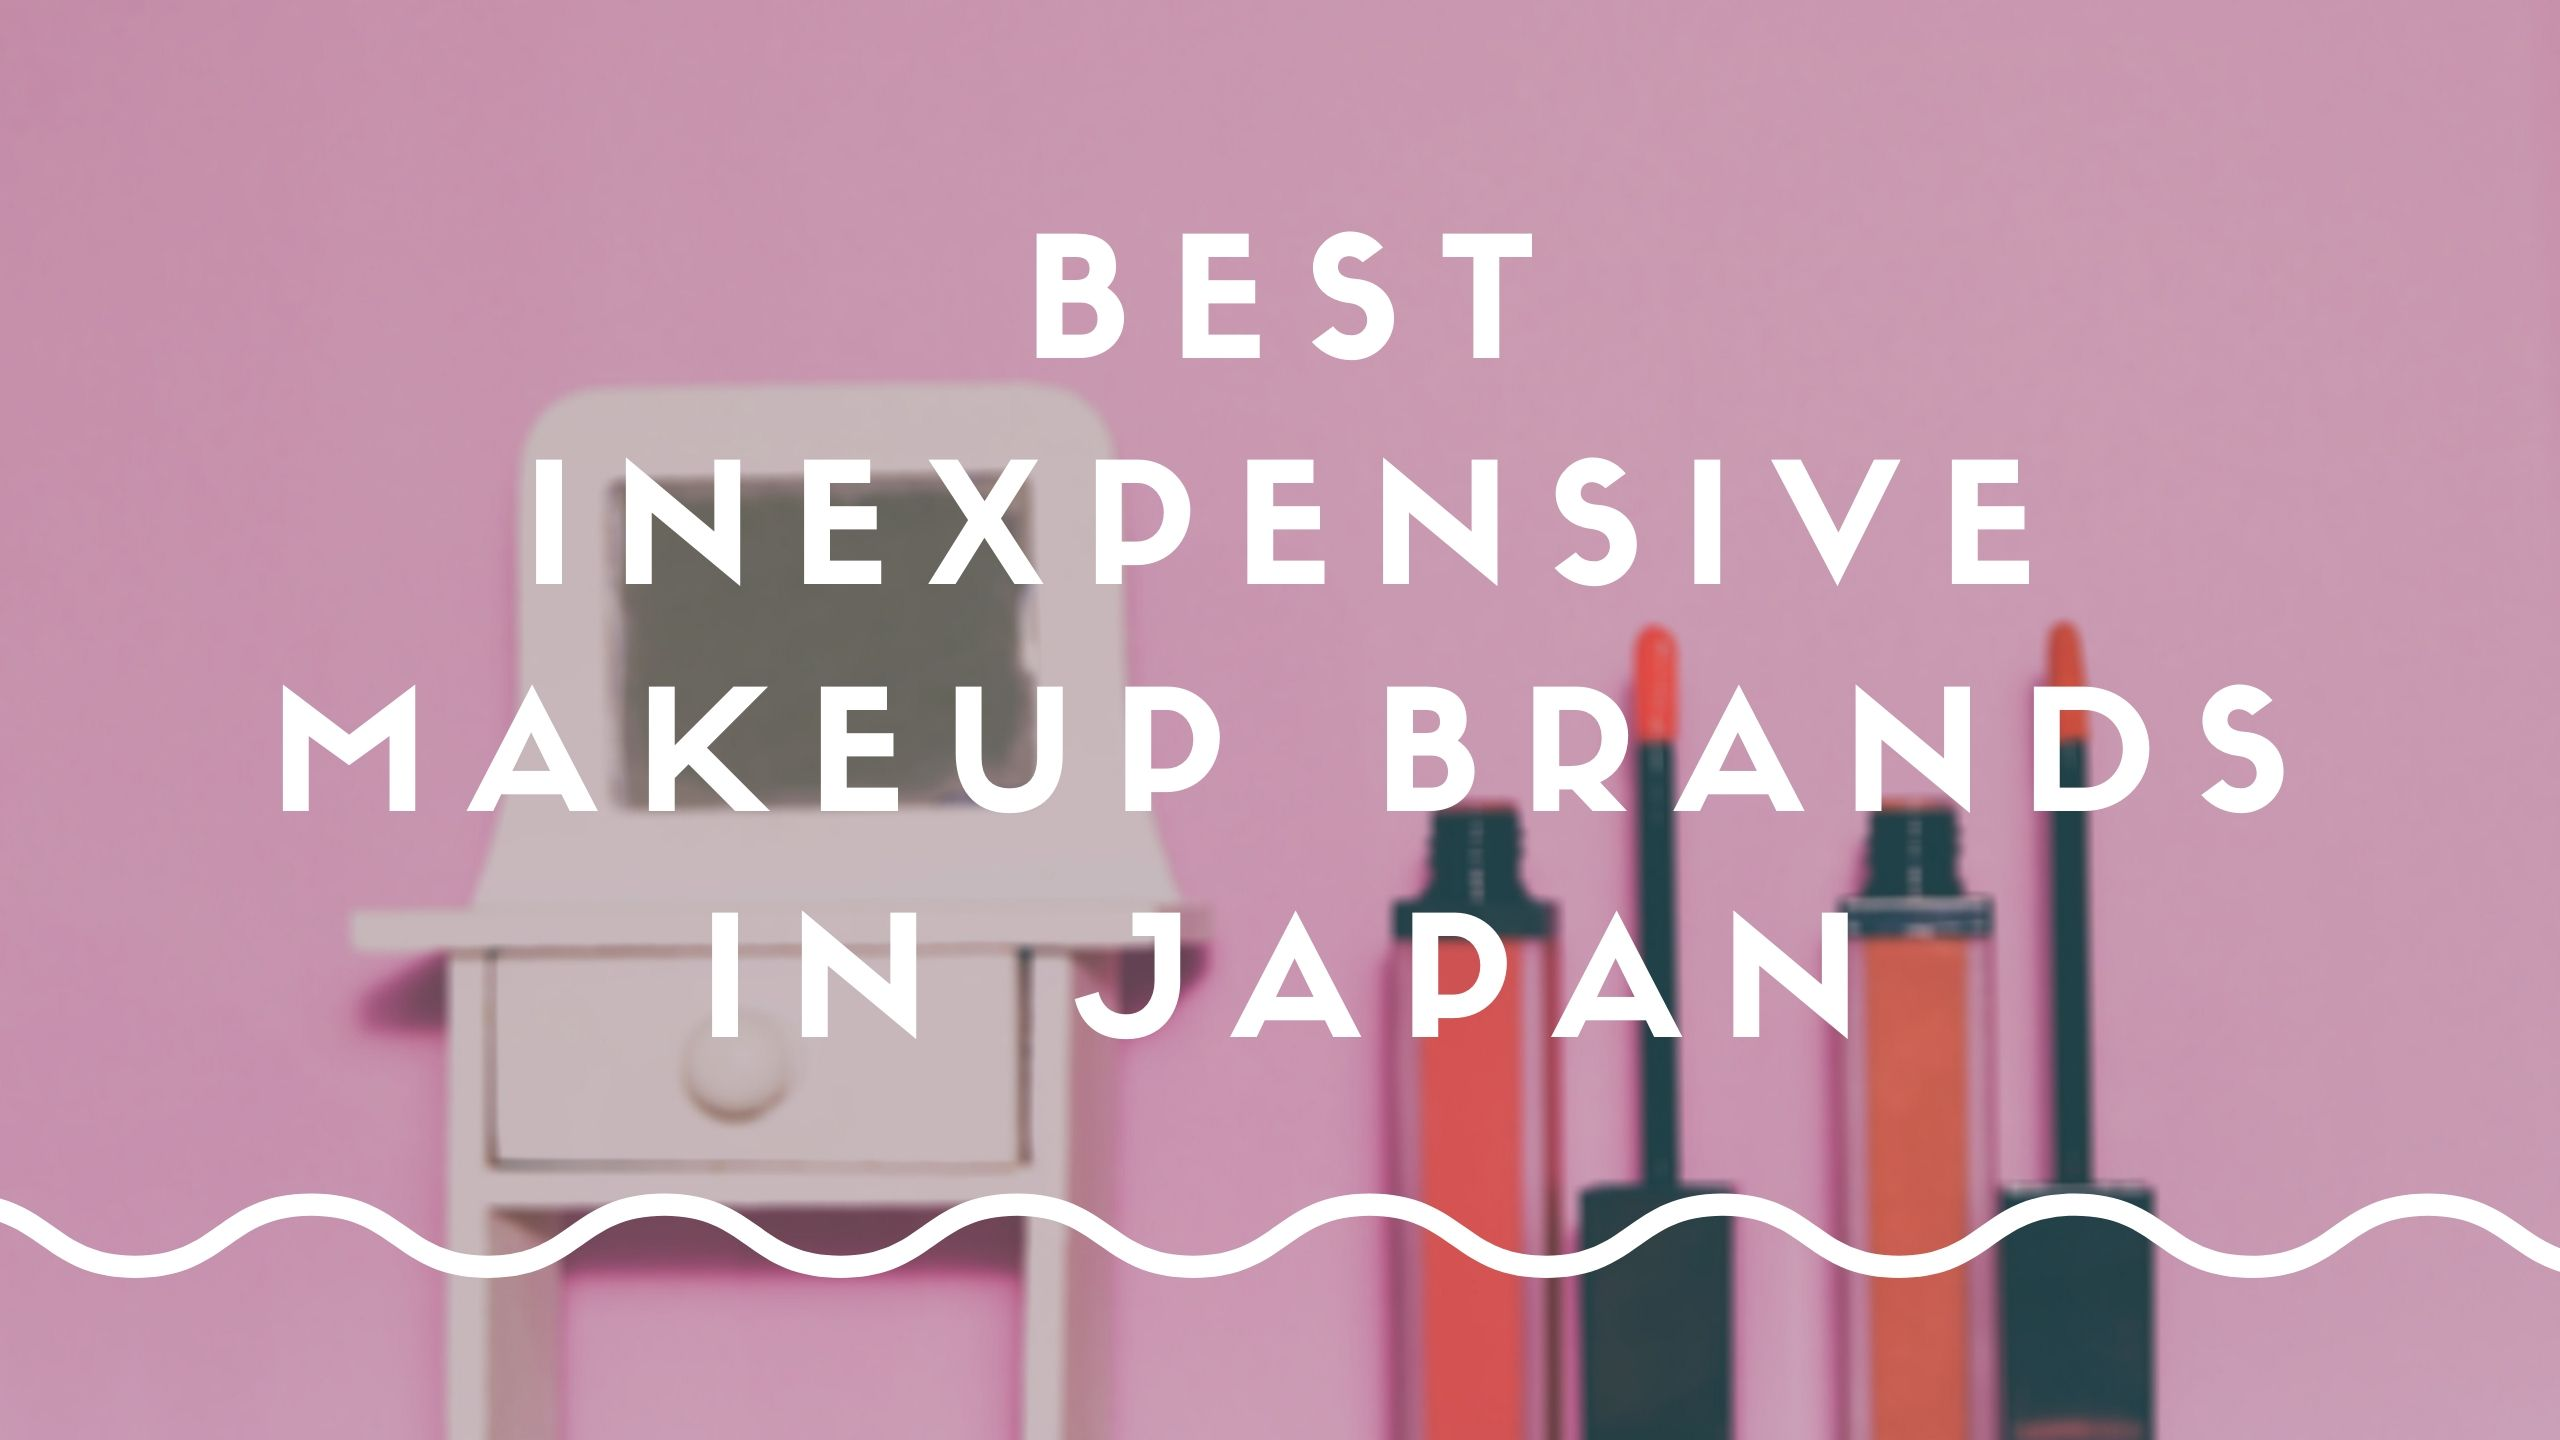 5 Best Inexpensive Japanese Makeup Brands 2020